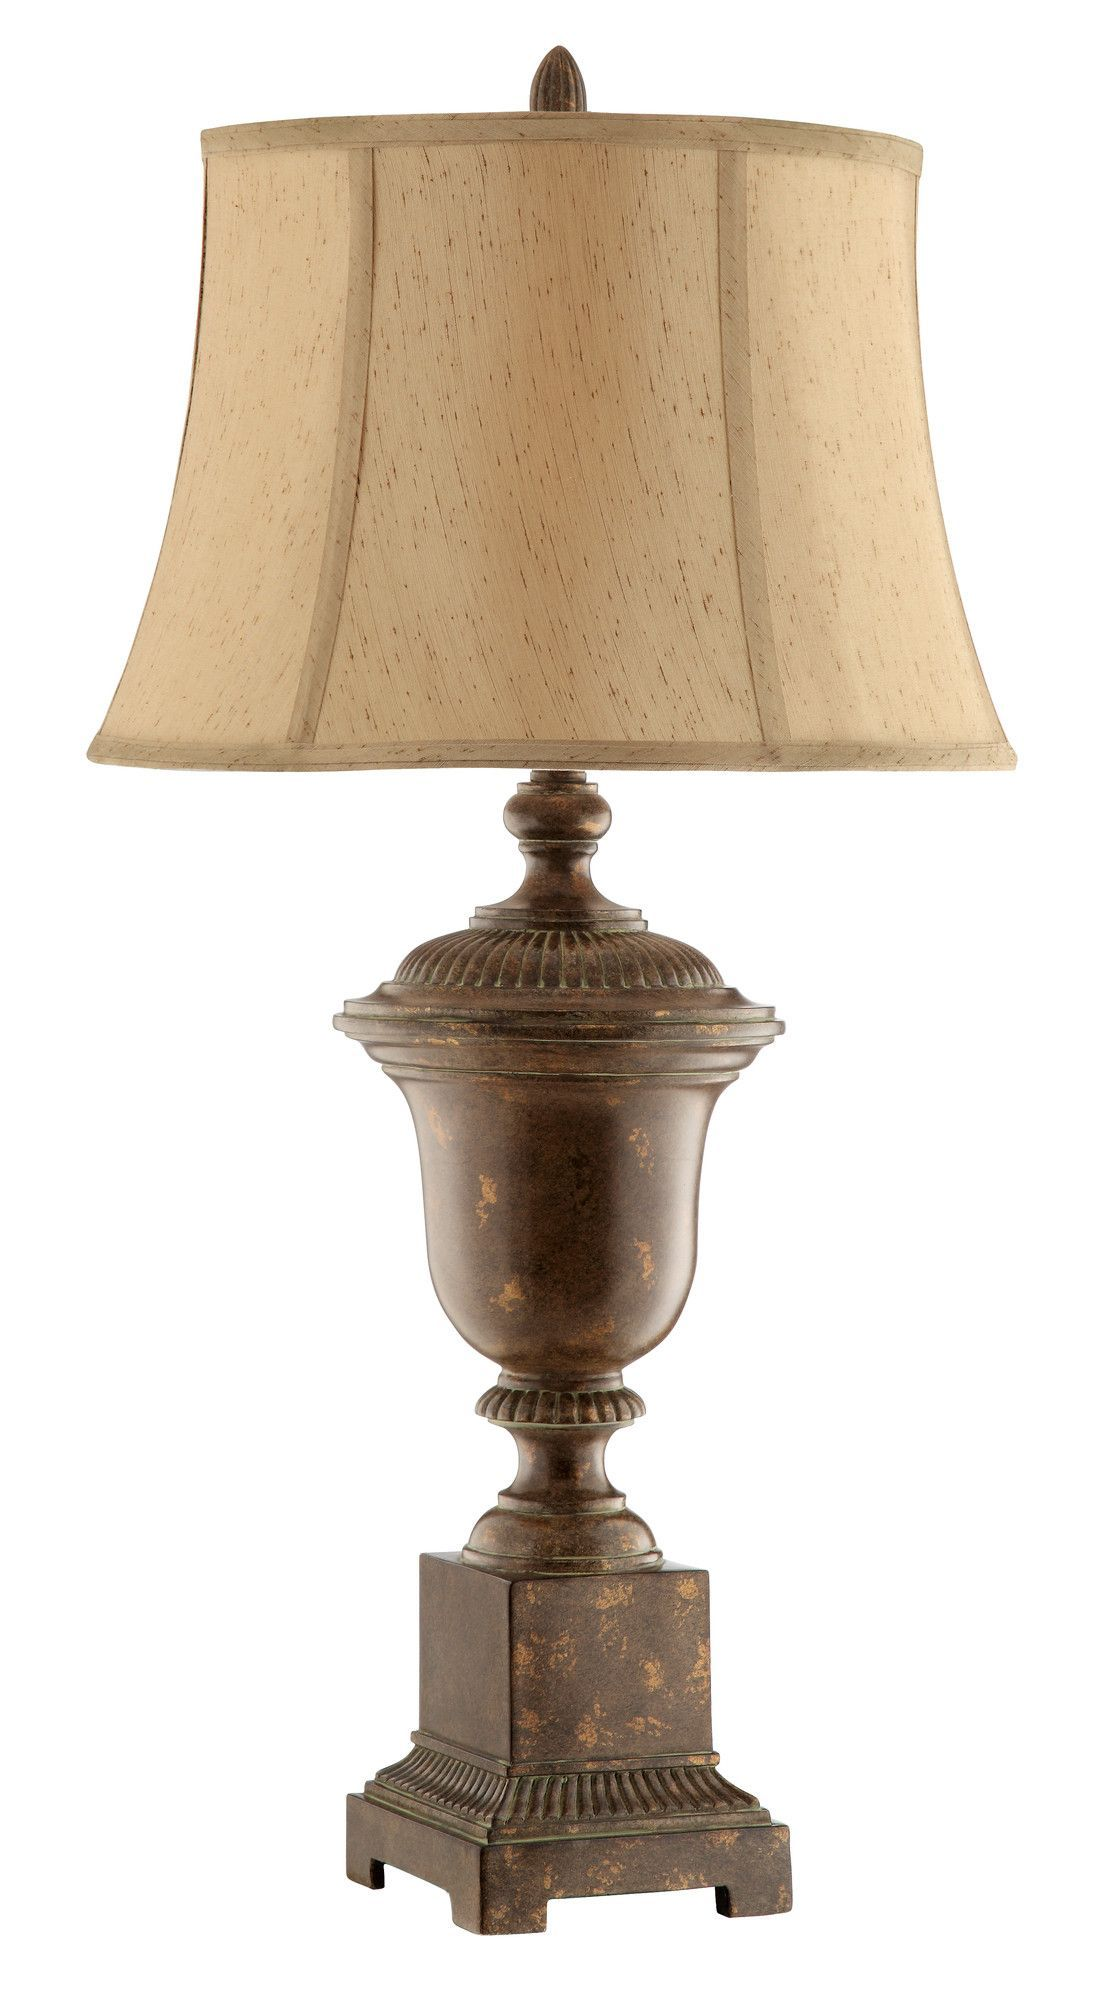 Almira Urn 34 5 H Table Lamp With Bell Shade Traditional Table Lamps Table Lamp Lamp